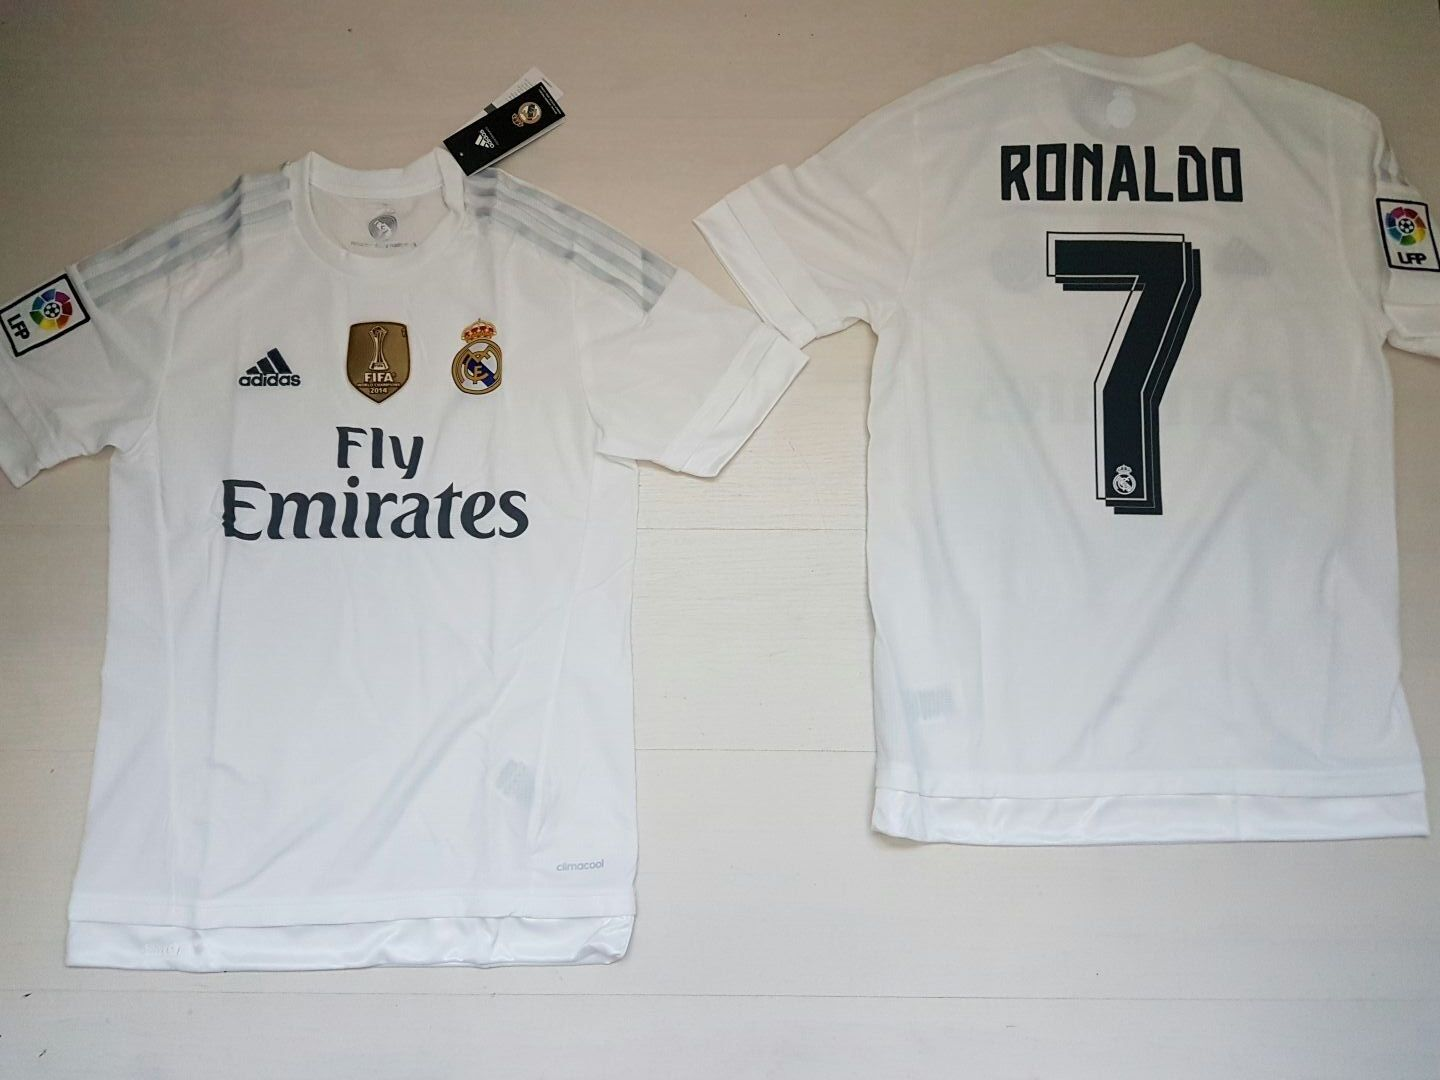 JERSEY HOME REAL MADRID ADIDAS 7 RONALDO MATCH HEMD 2014 2014 2014 WORLD MEISTER PATCH  | Hochwertige Produkte